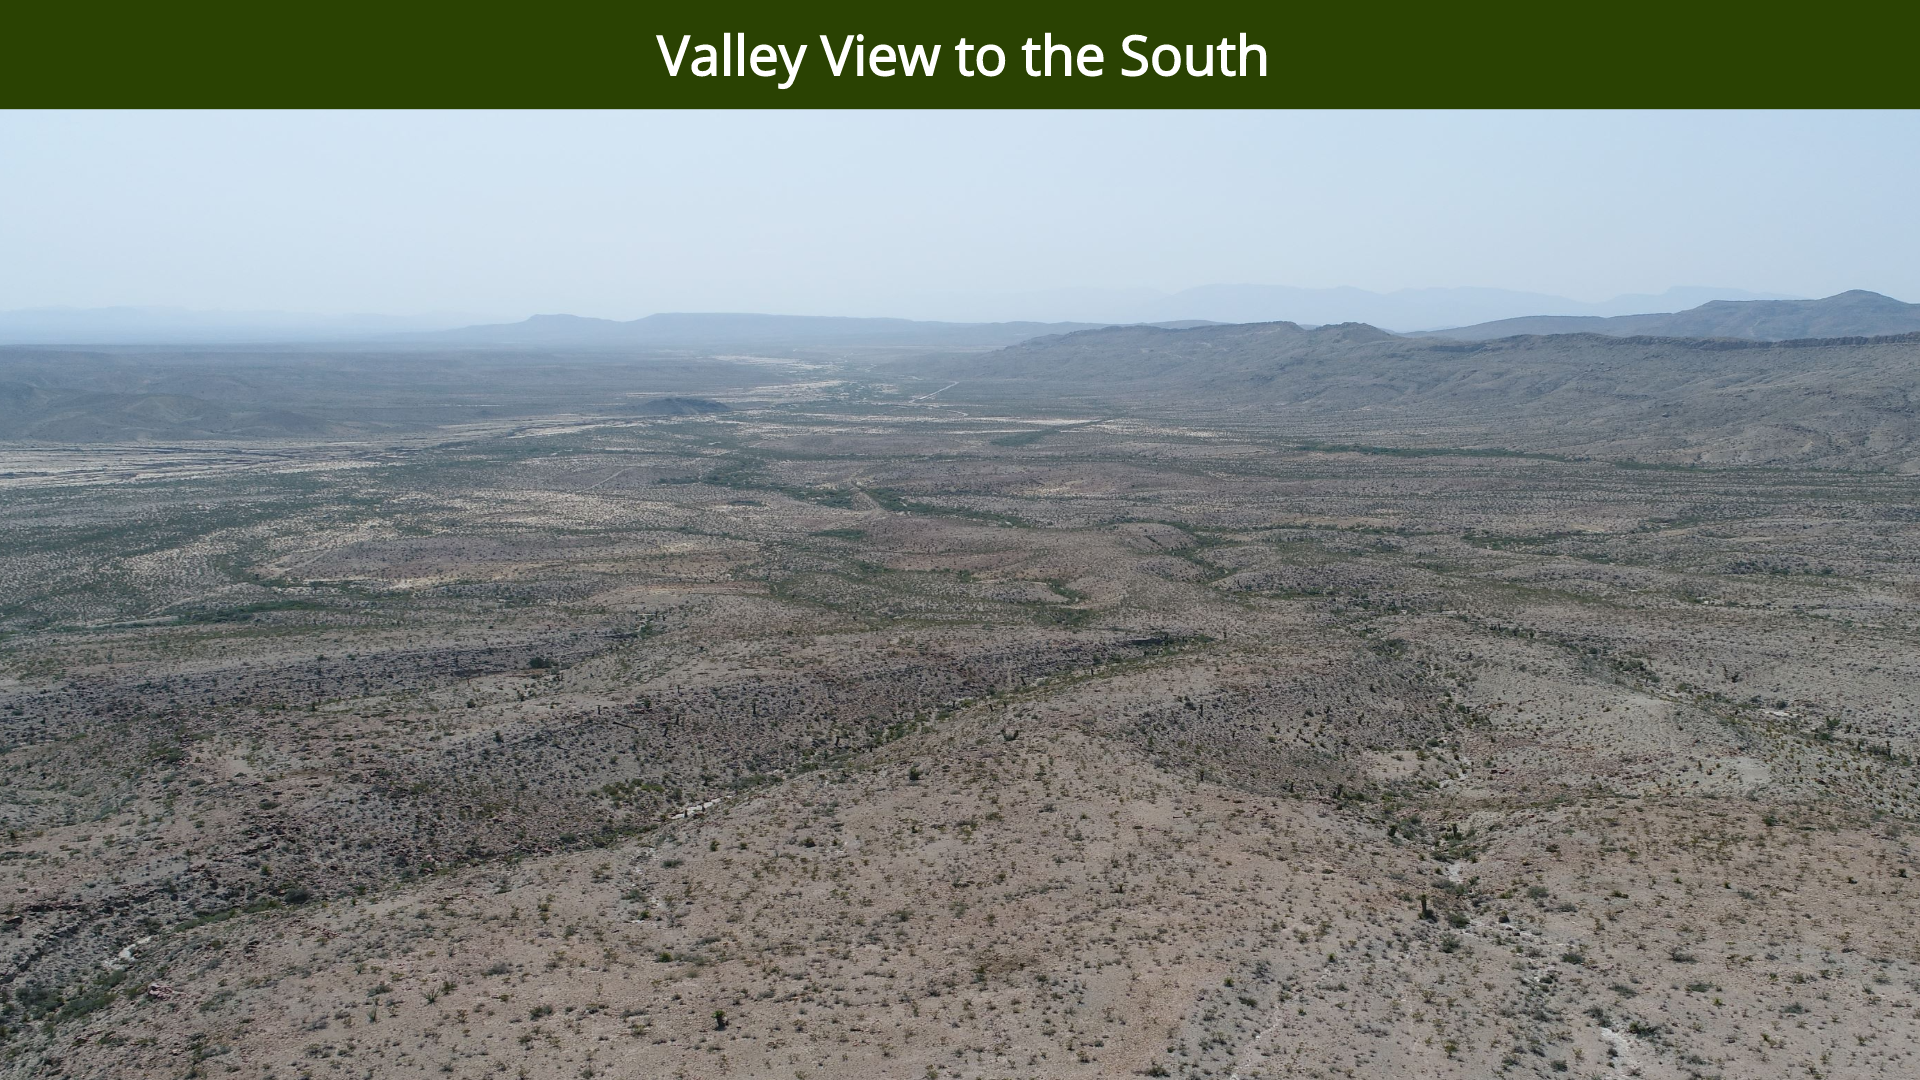 Valley View to the South